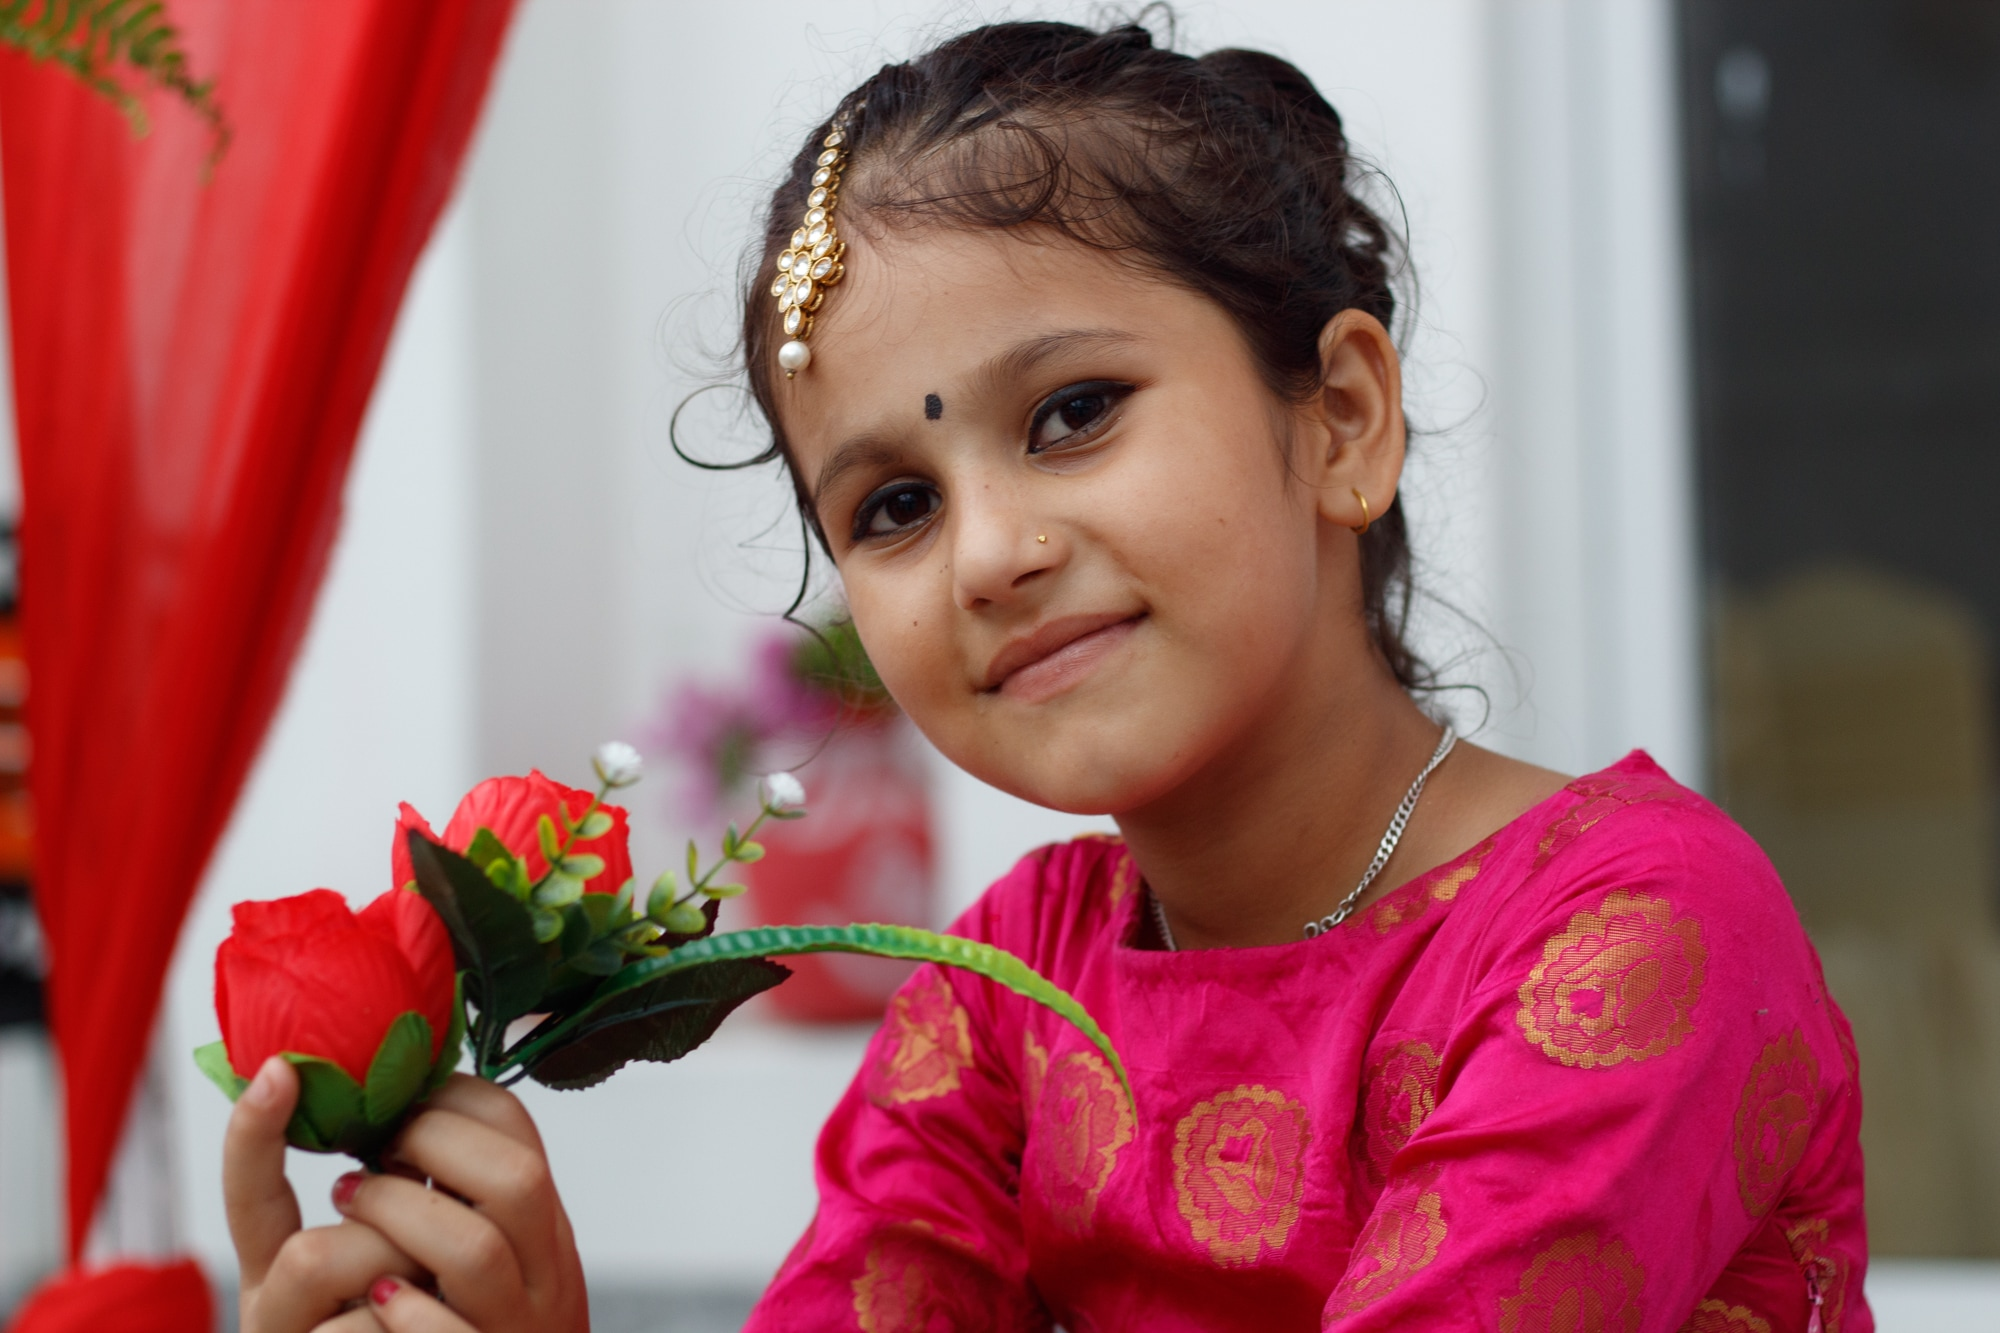 A young Nepali girl poses for a picture at a wedding.